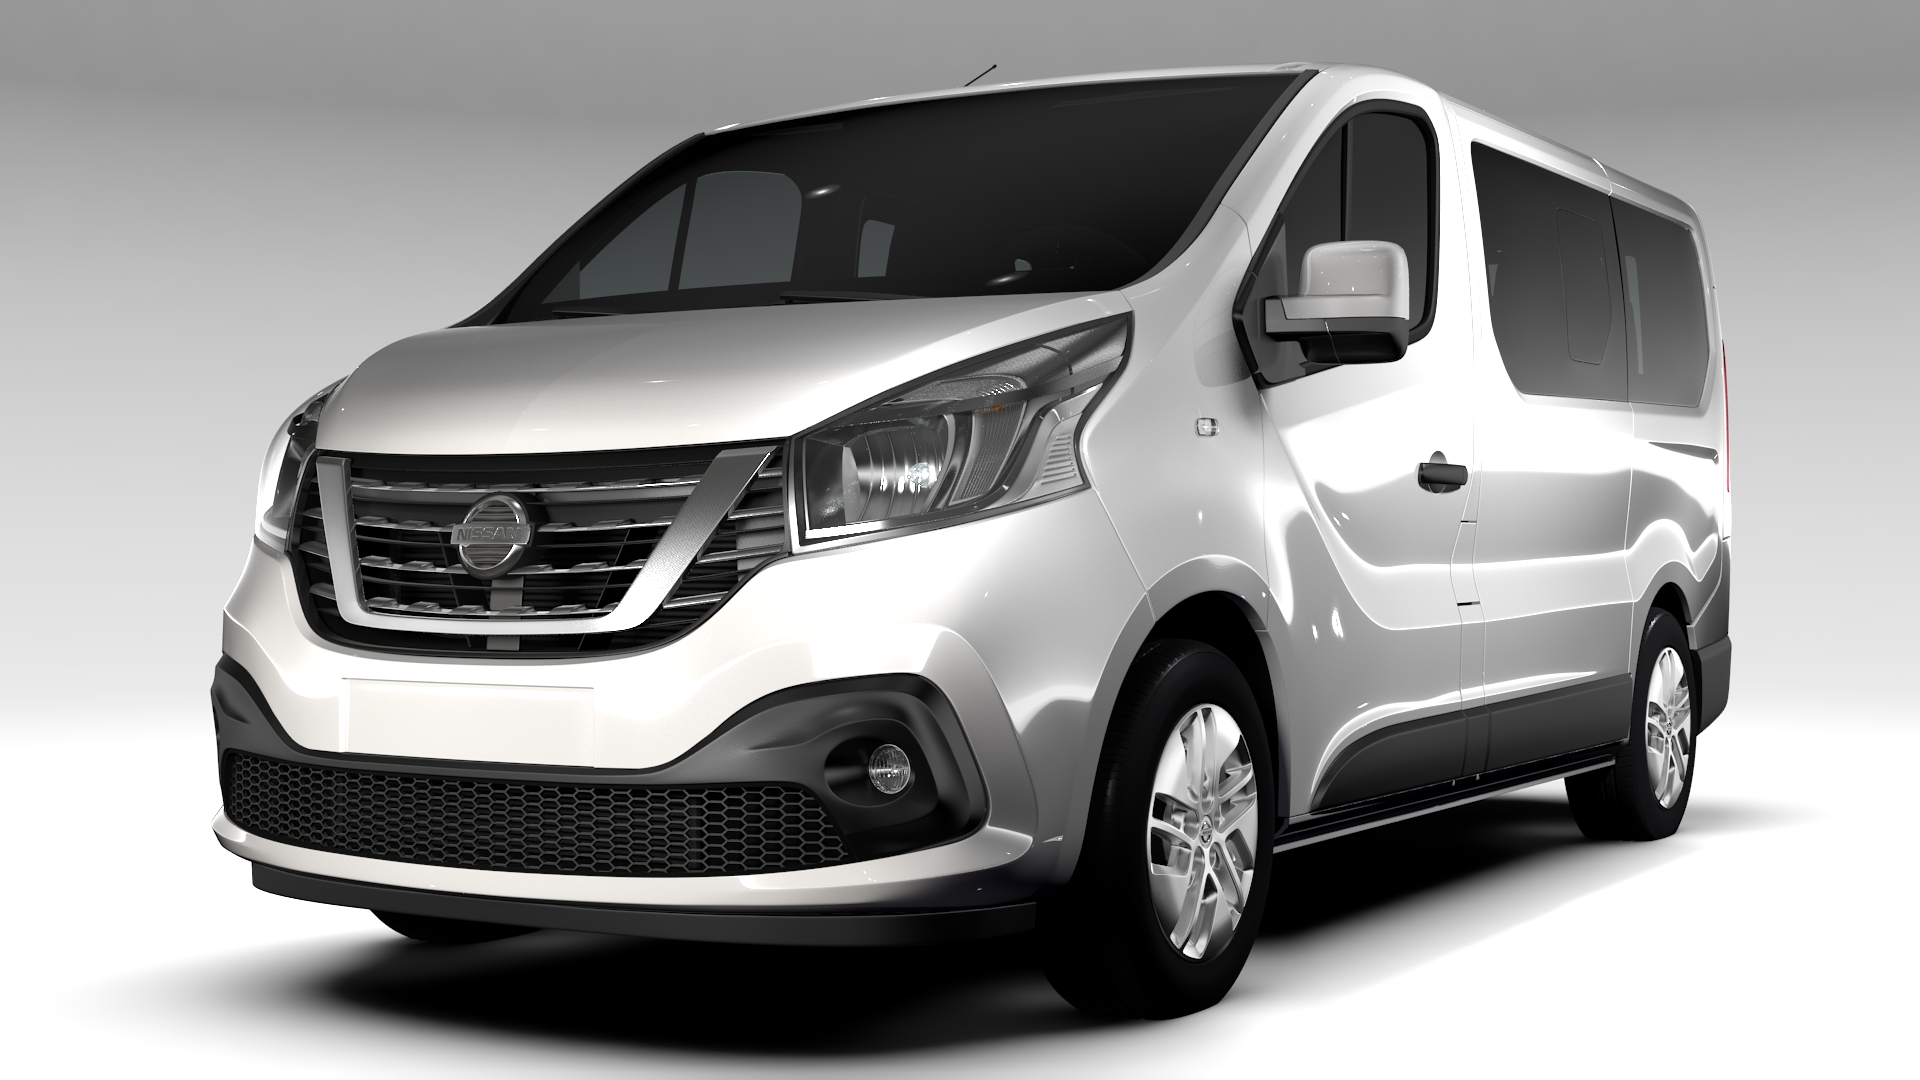 nissan nv 300 combi 2016 3d model buy nissan nv 300 combi 2016 3d model flatpyramid. Black Bedroom Furniture Sets. Home Design Ideas